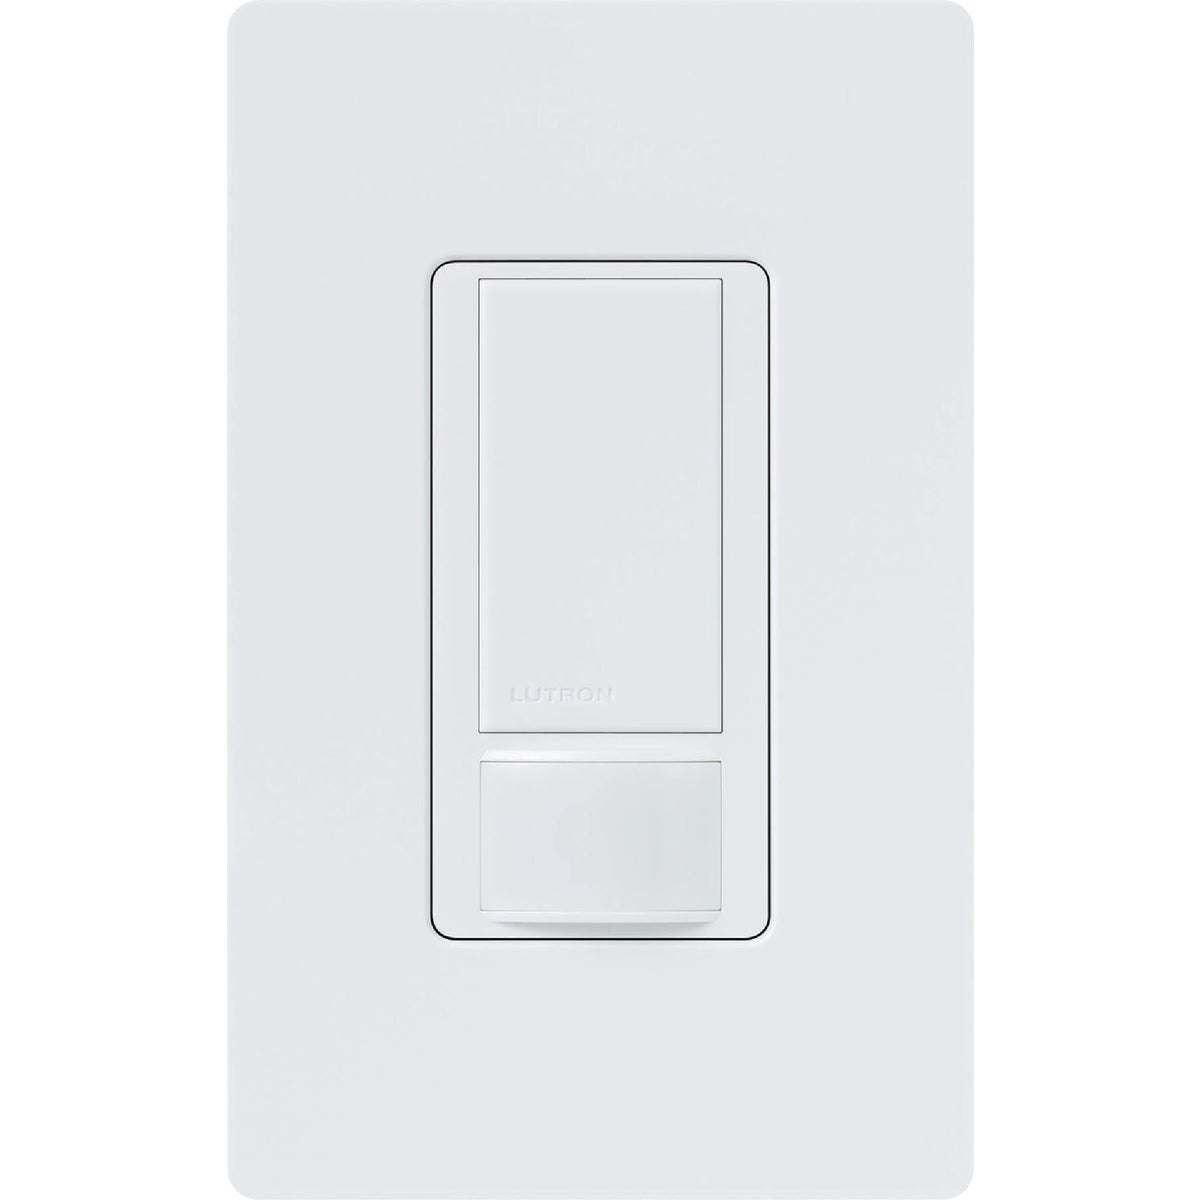 WH OCCUPANCY SENSOR - MS-OPS5MH-WH by Lutron Elect Co Inc